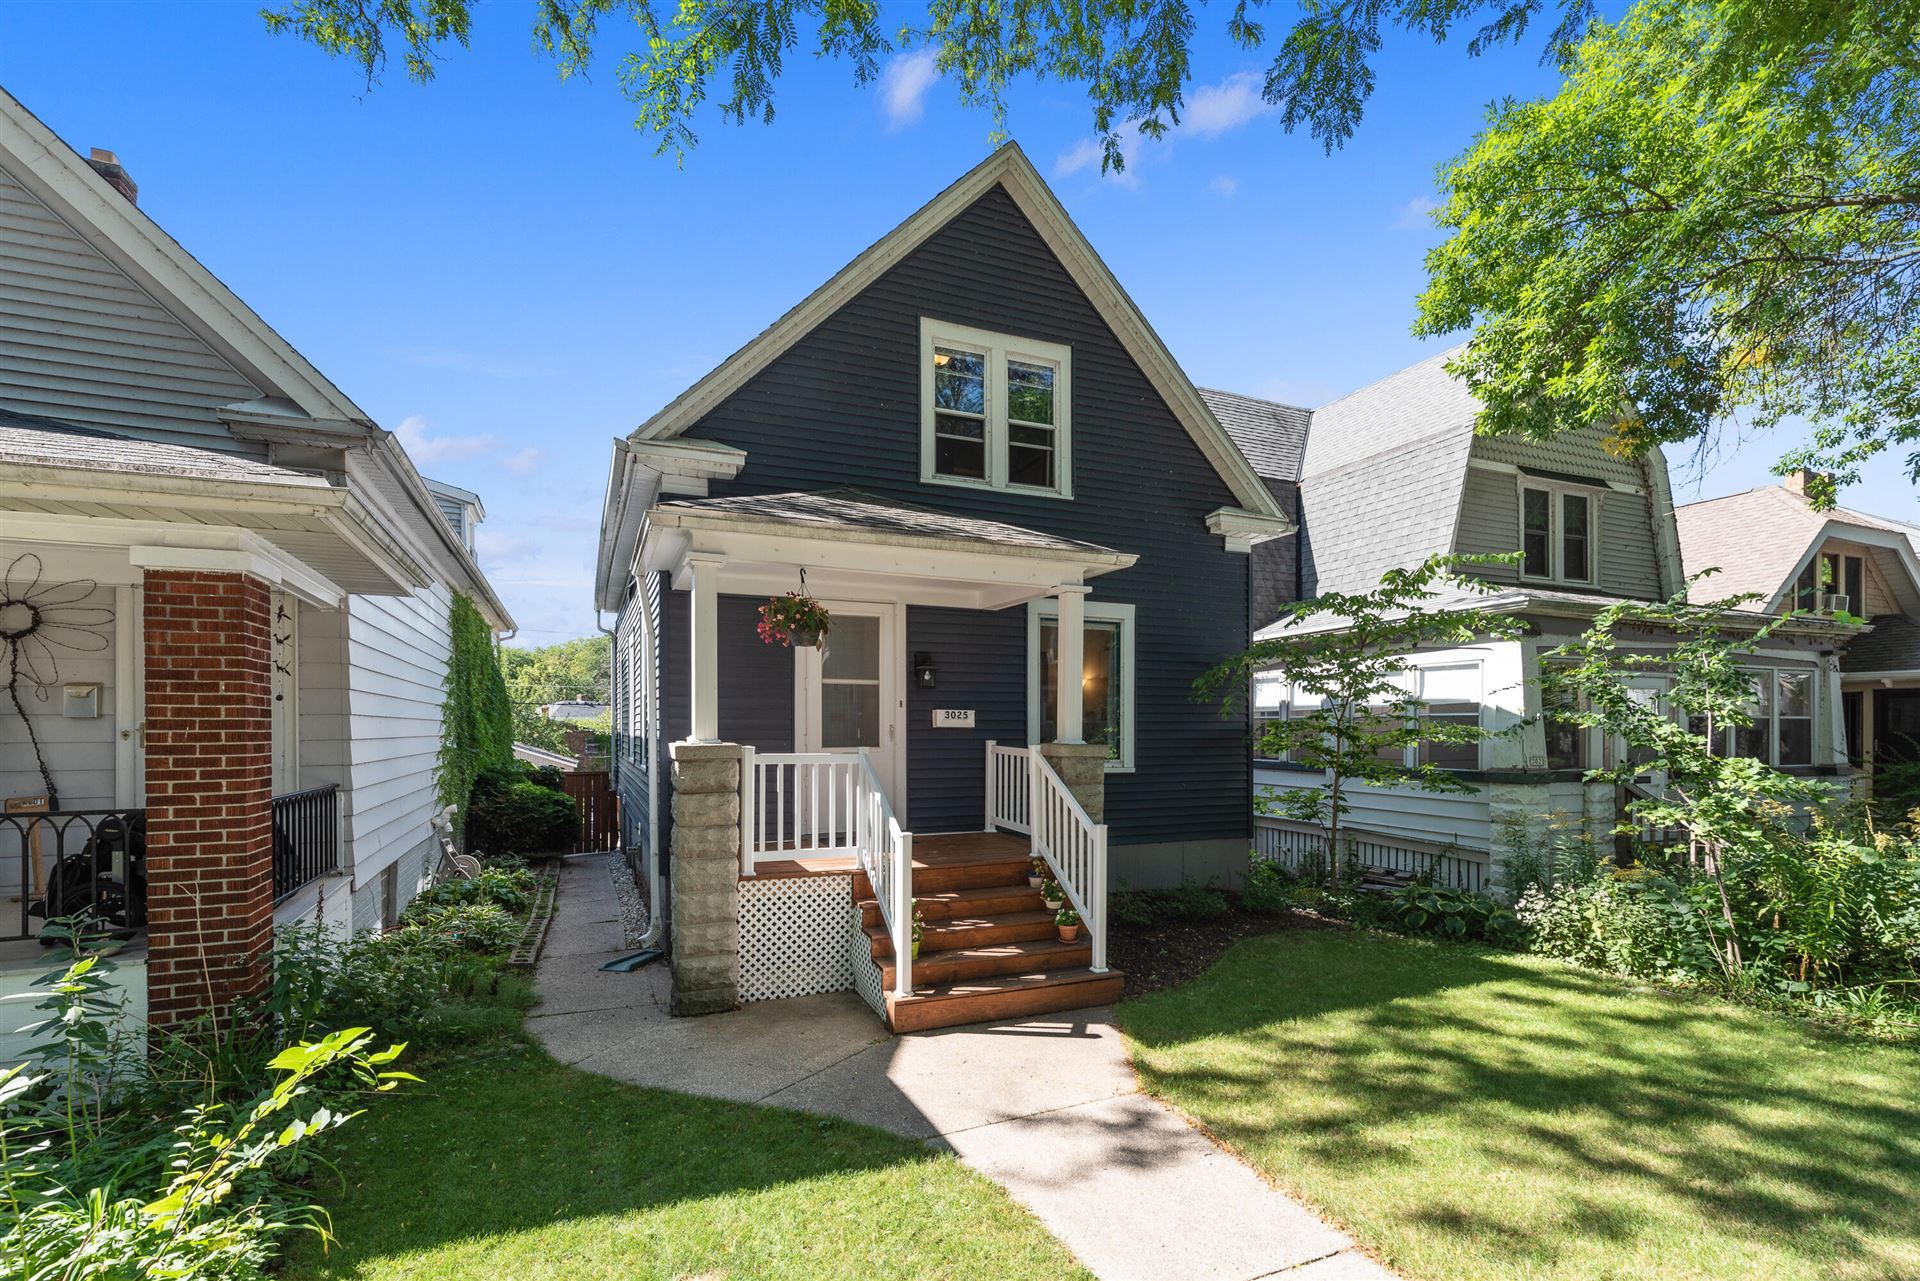 3025 S Wentworth Ave, Milwaukee, WI 53207 - MLS#: 1763571